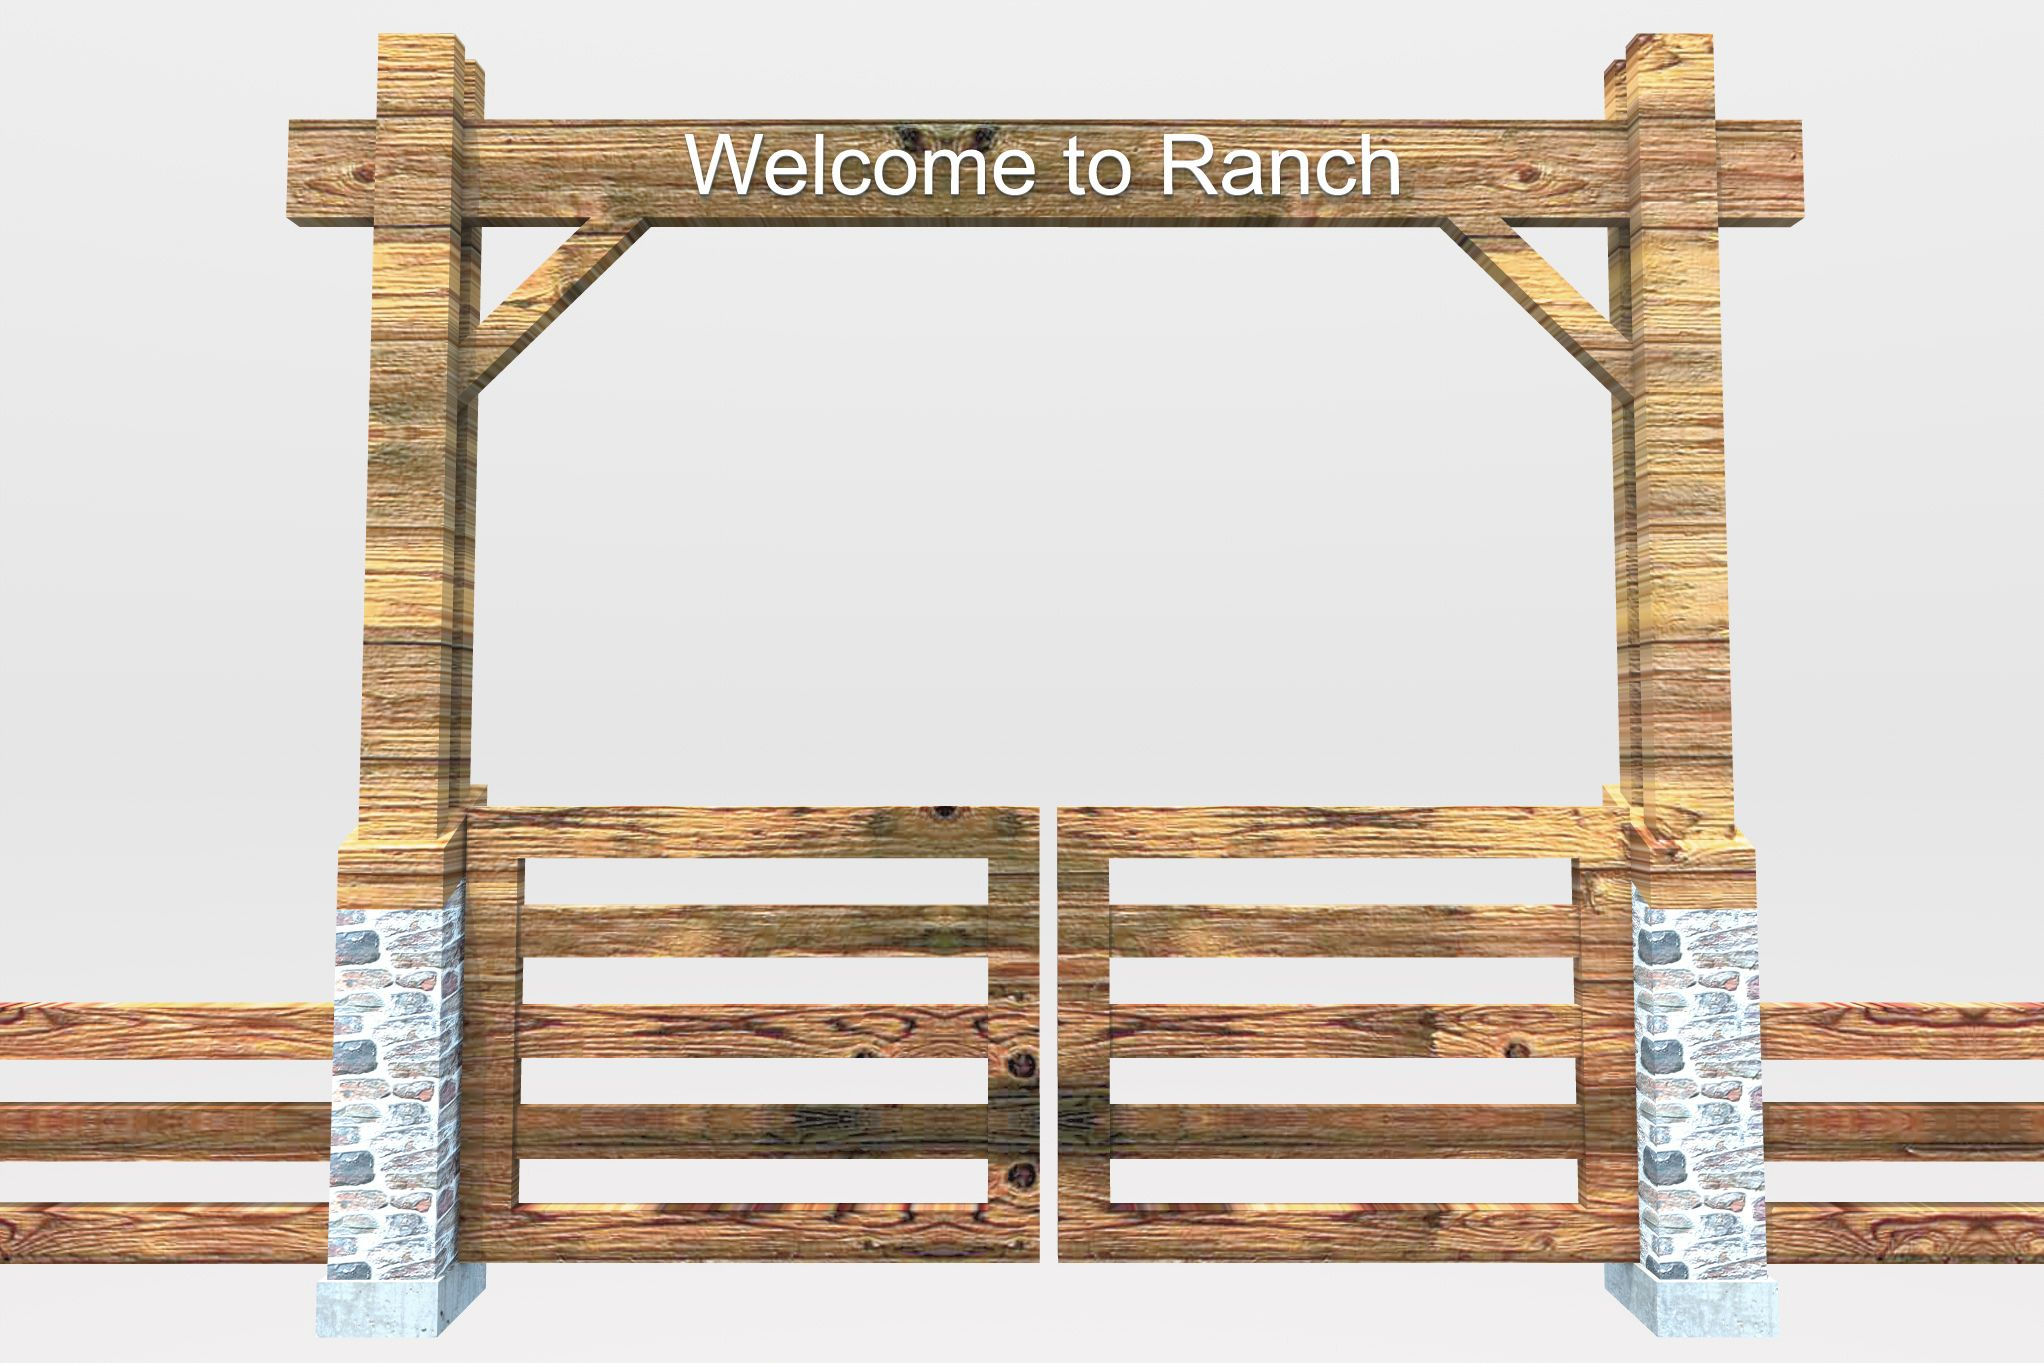 Pix For > Ranch Gate Clipart | Ideas for the House | Pinterest ...